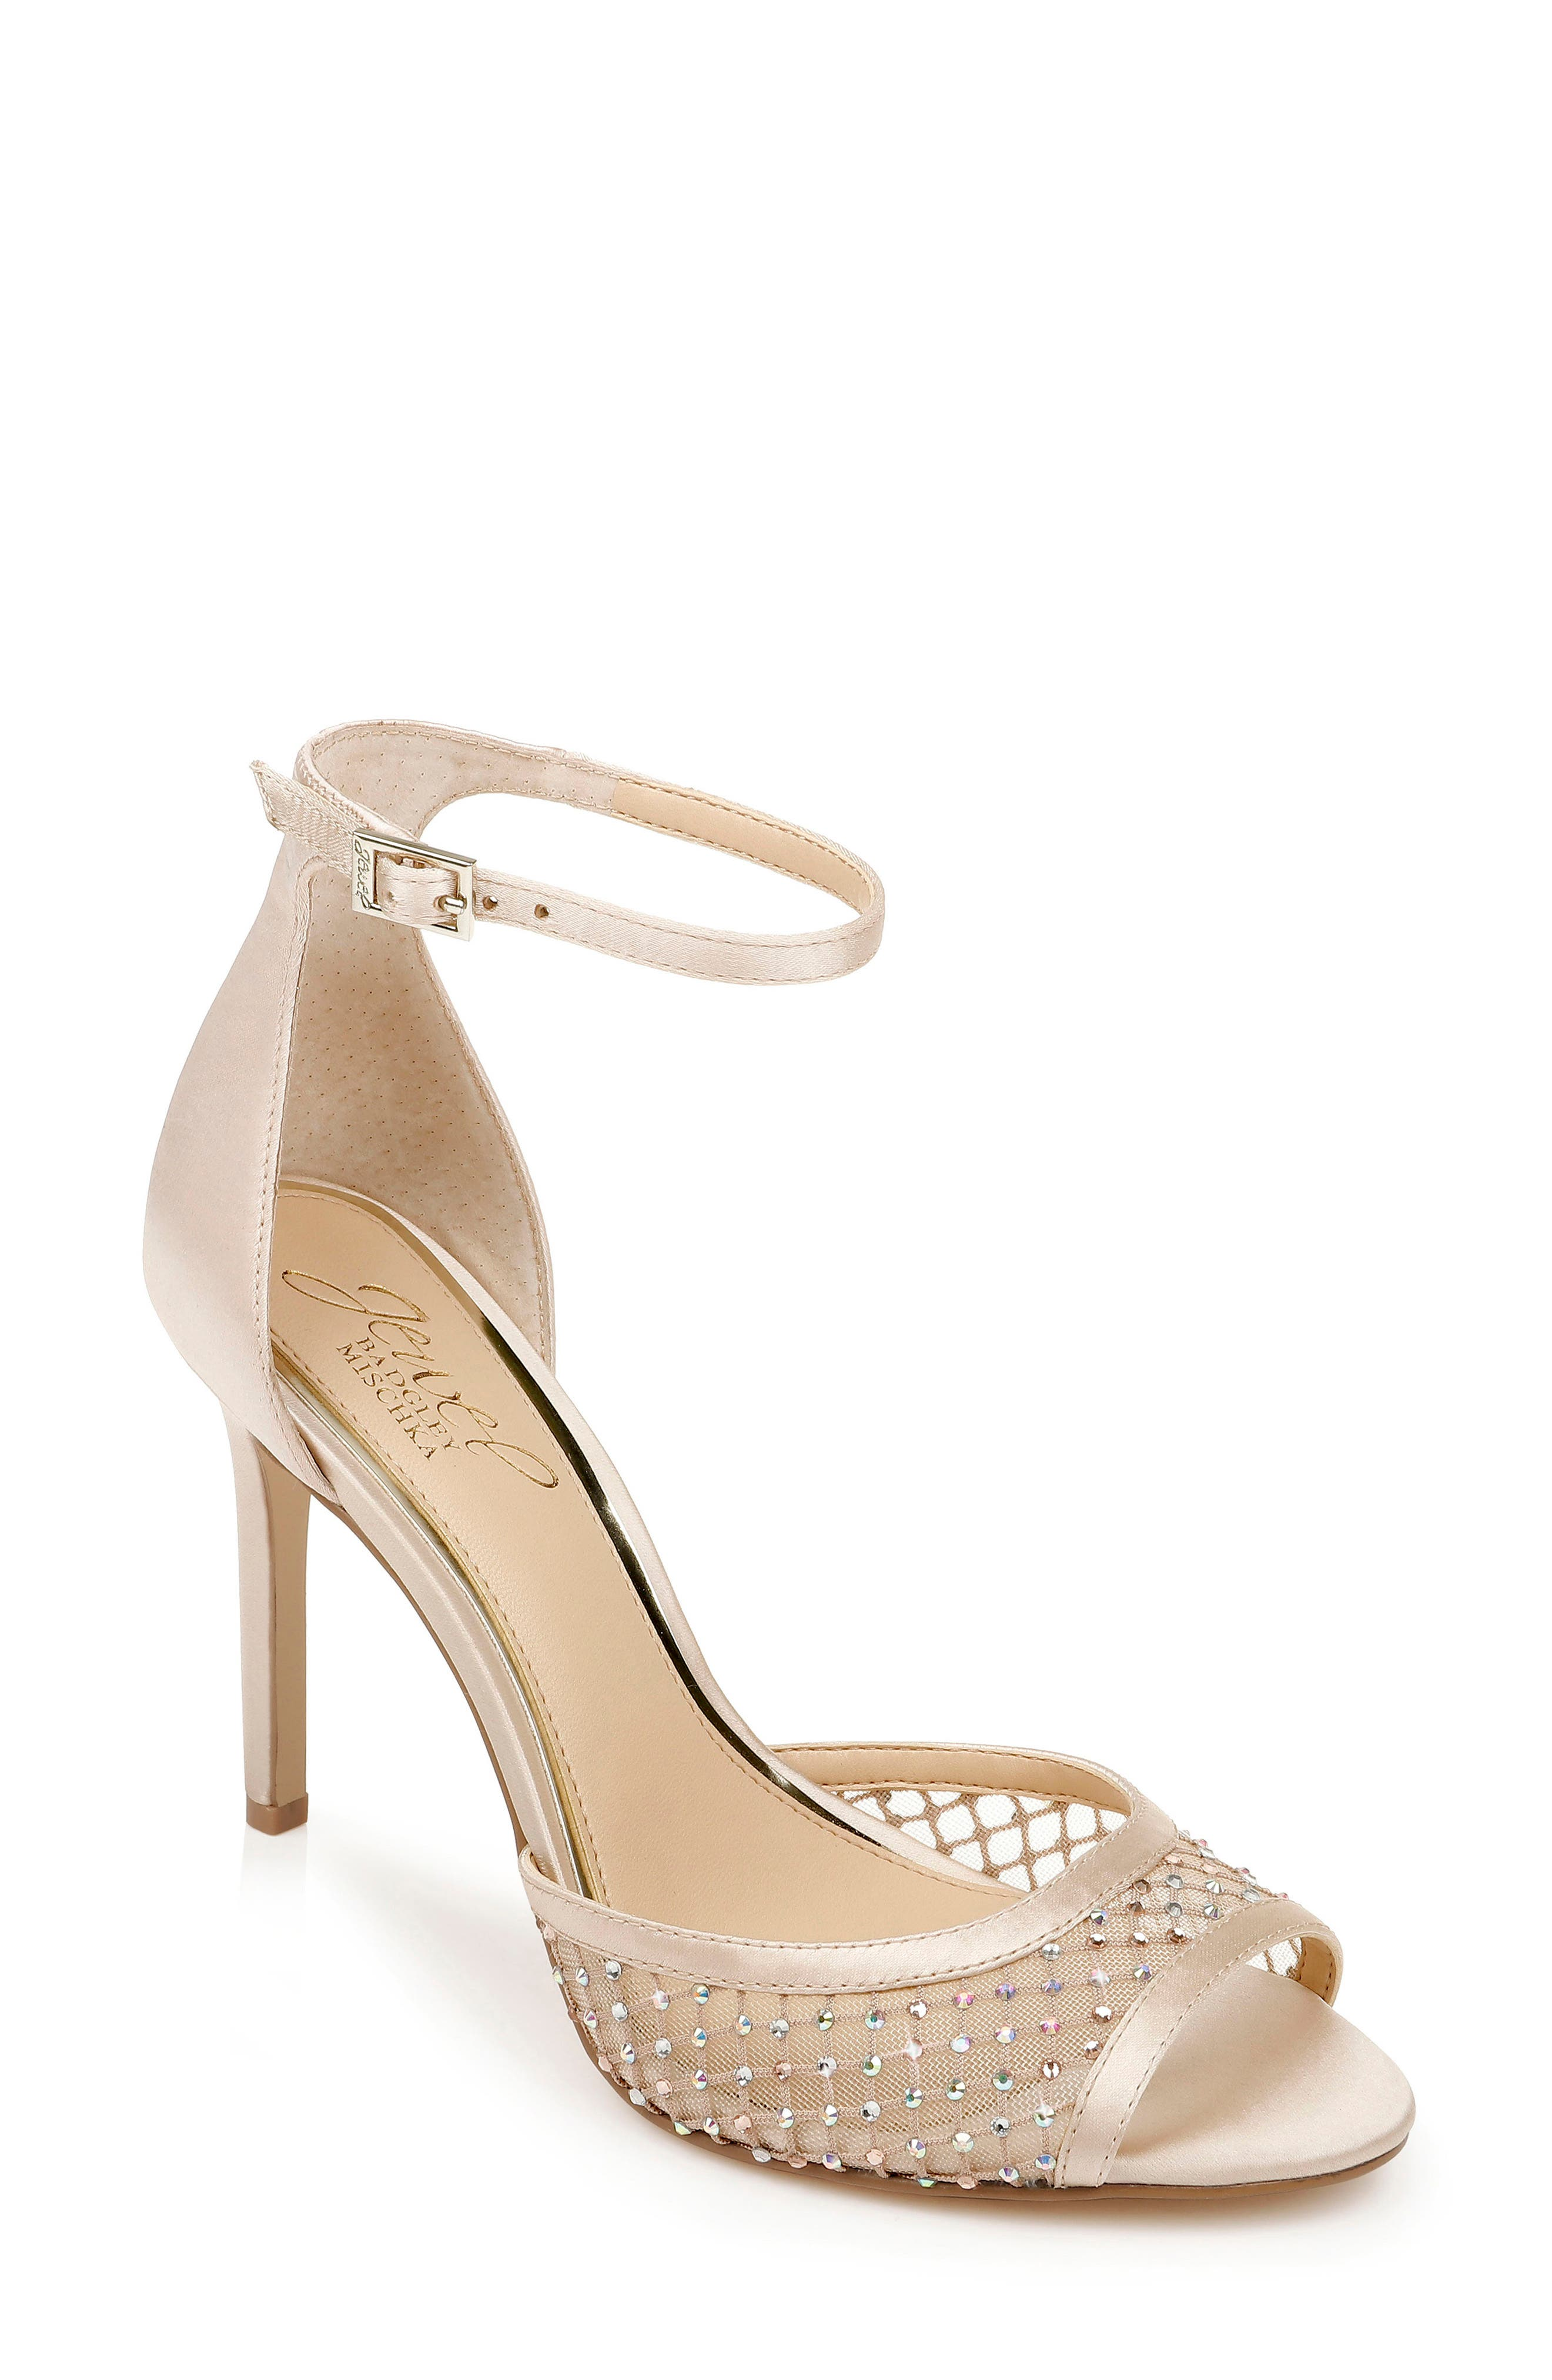 Crystal-dotted mesh fashions the toe strap of a glittery metallic party sandal secured by a slim ankle strap. Style Name: Jewel Badgley Mischka Crystal Embellished Sandal (Women). Style Number: 5998993. Available in stores.